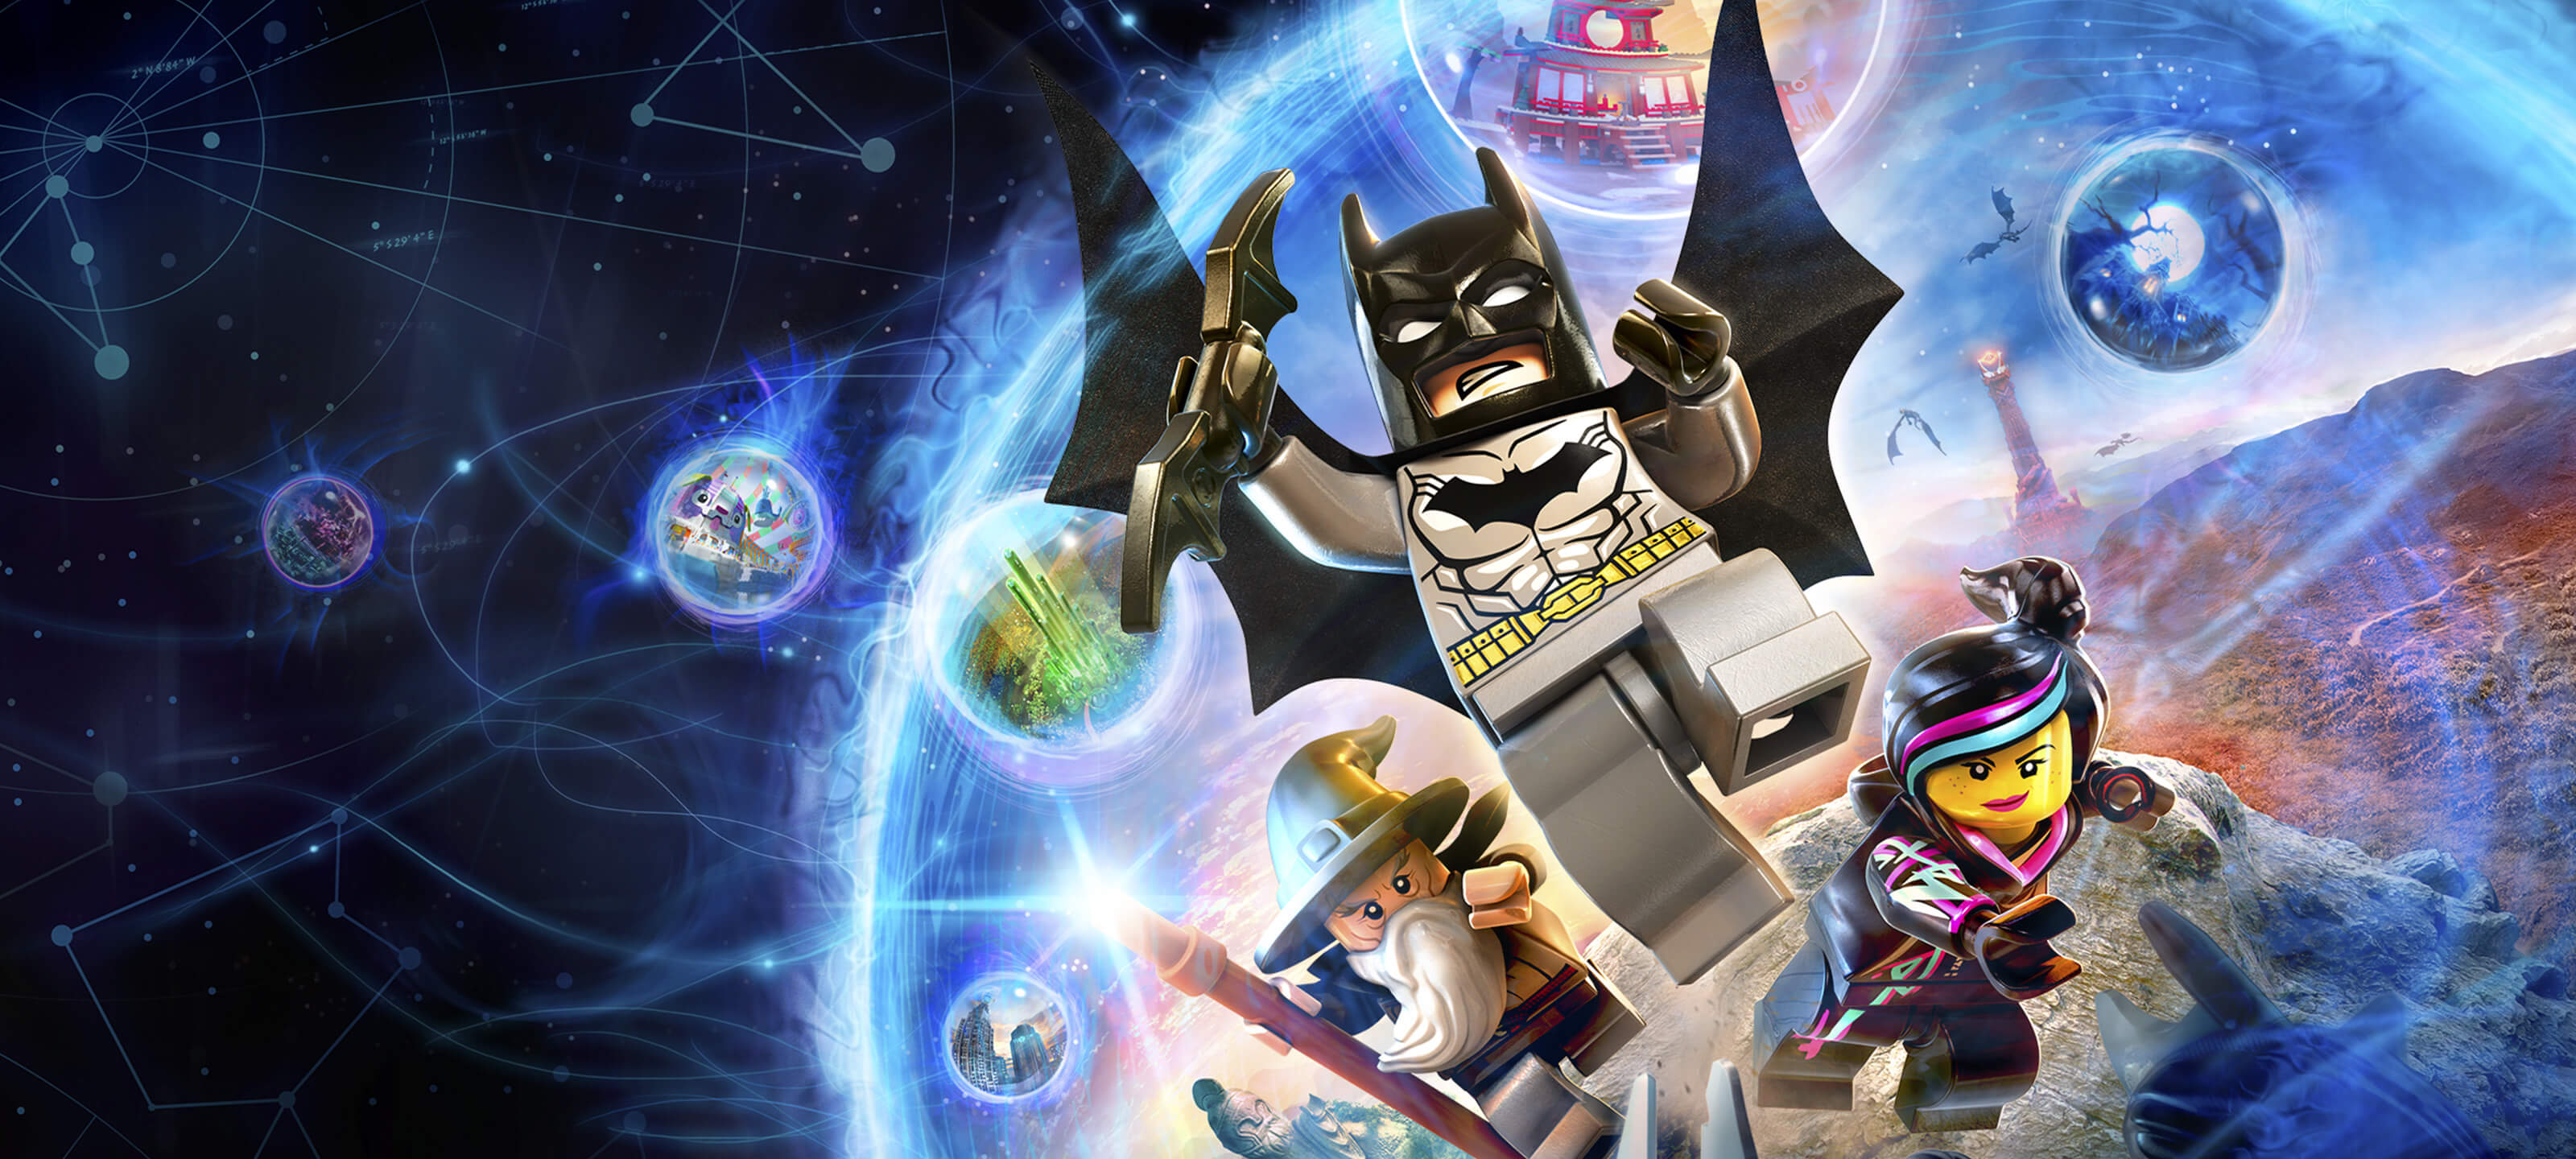 LEGO Dimensions Adds More Expansion Packs To The Roster